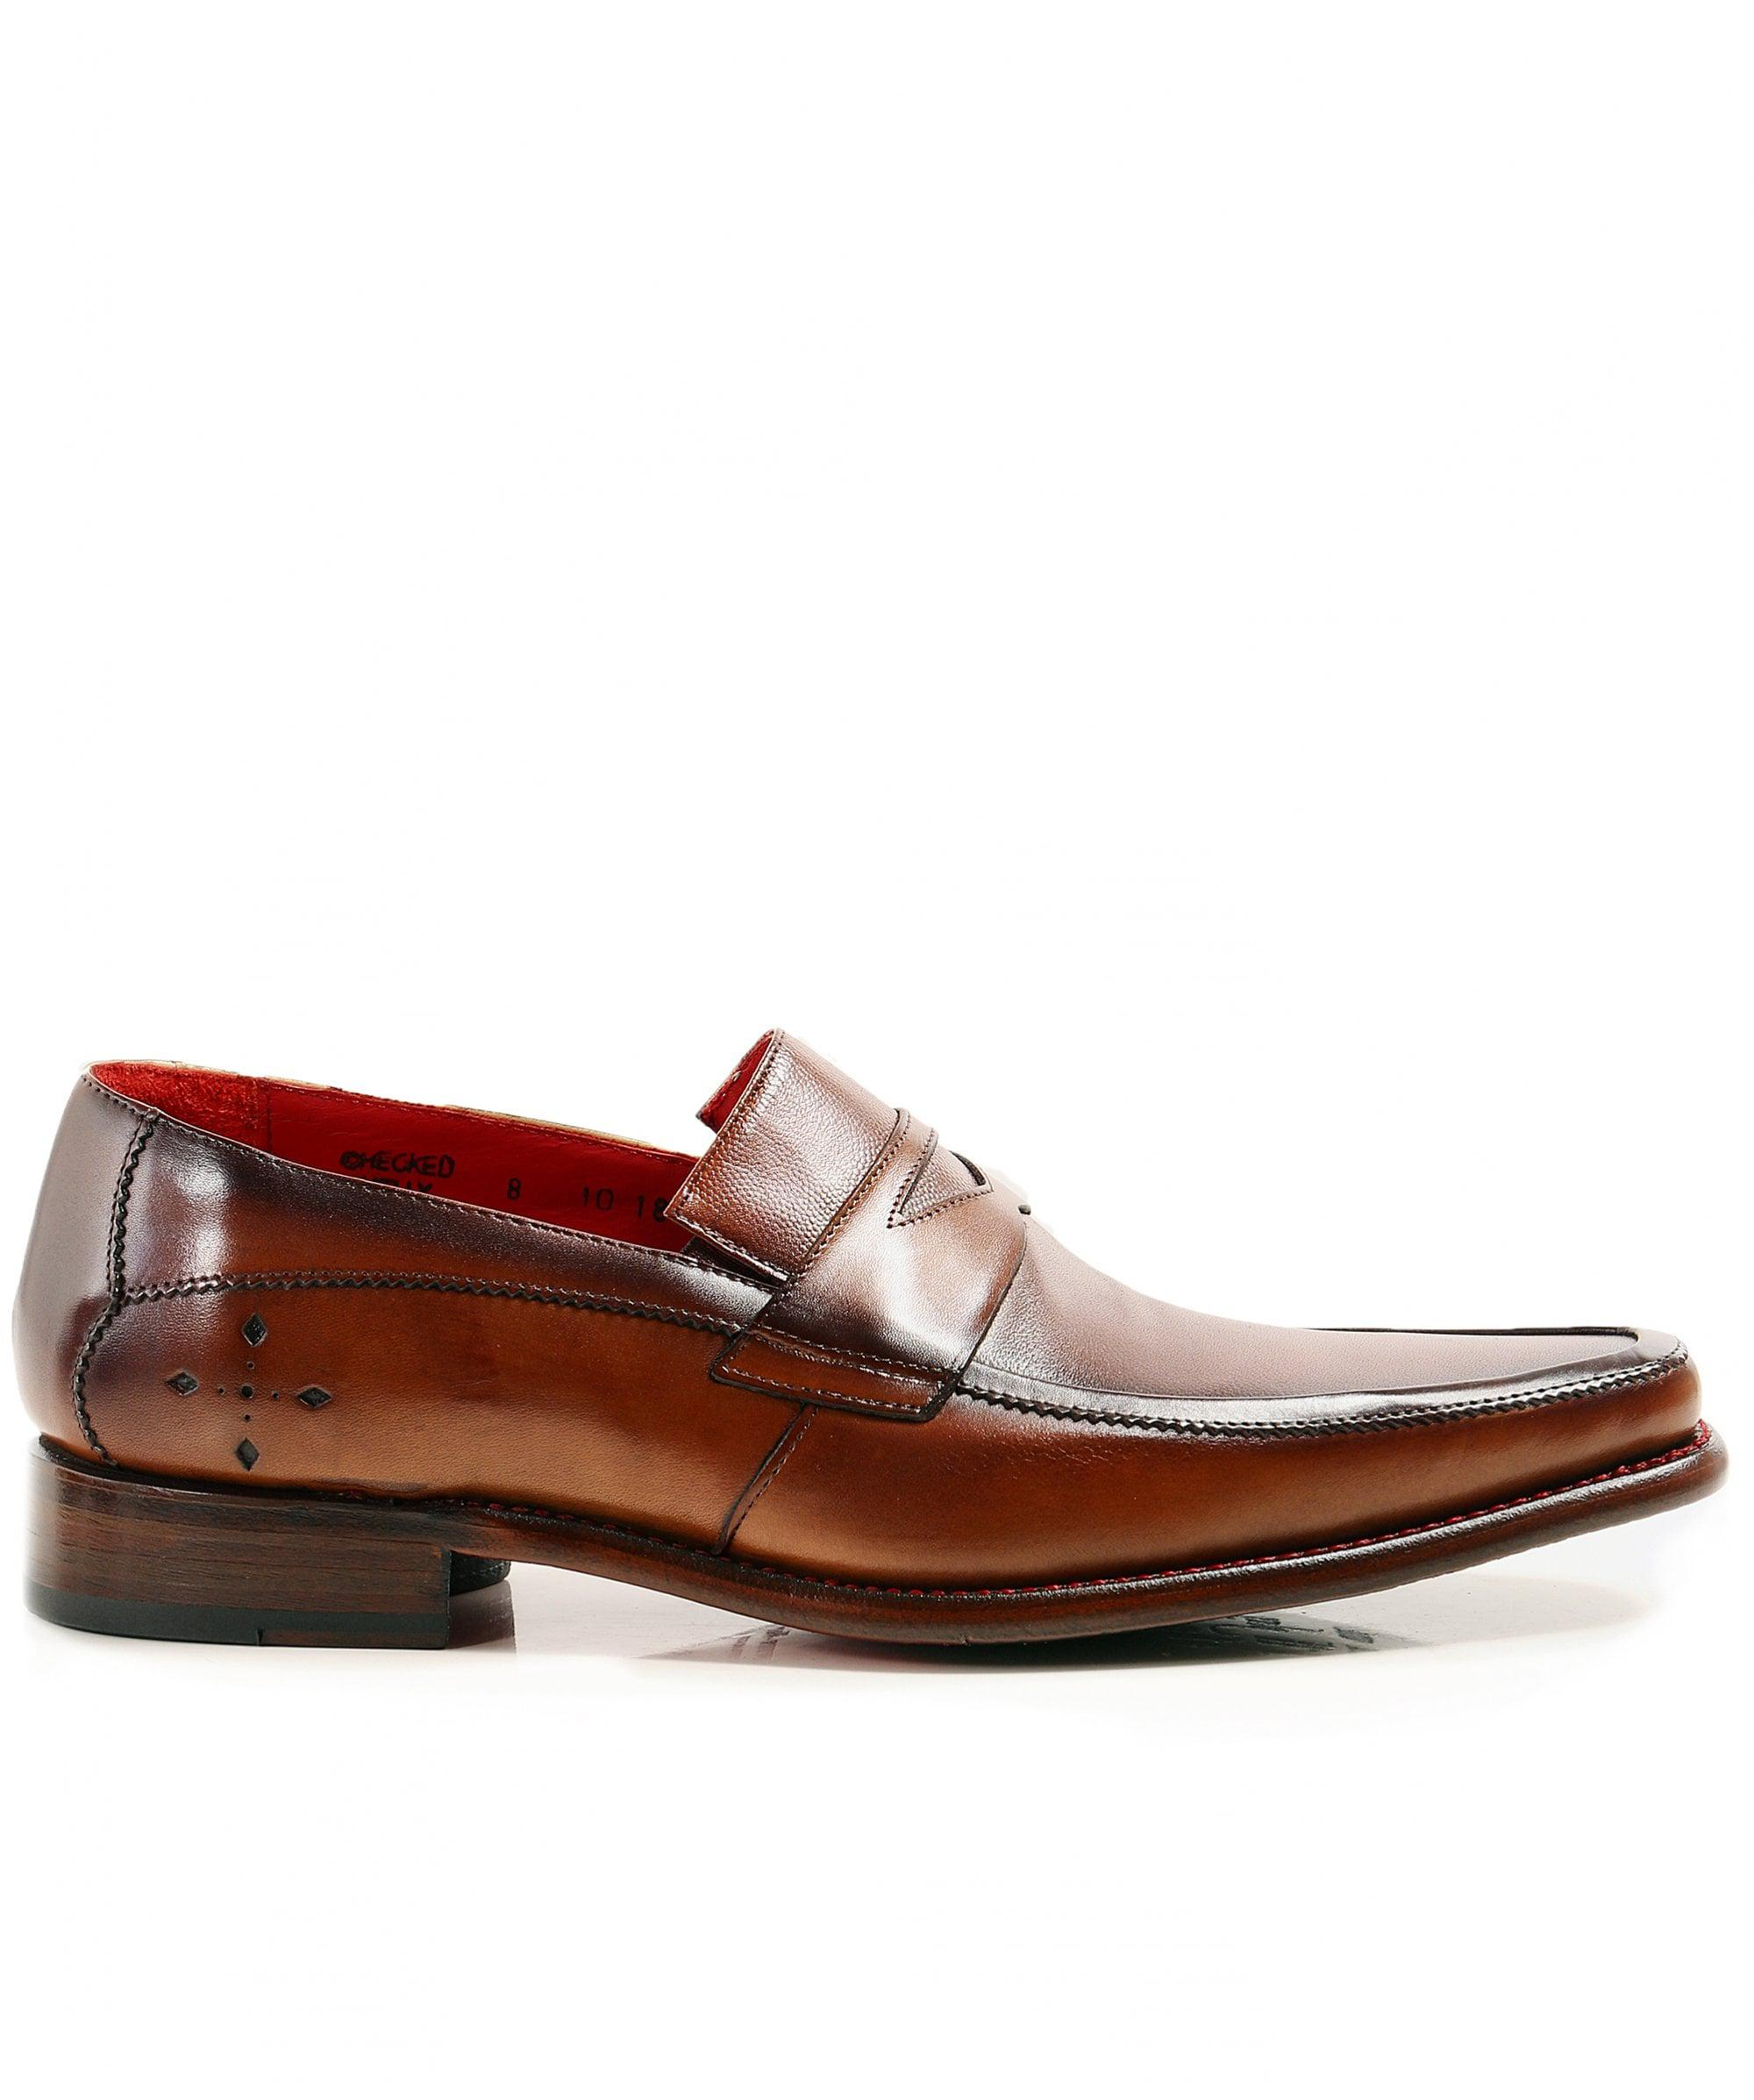 32b4e810d74f Lyst - Jeffery West Leather Checked Loafers in Brown for Men